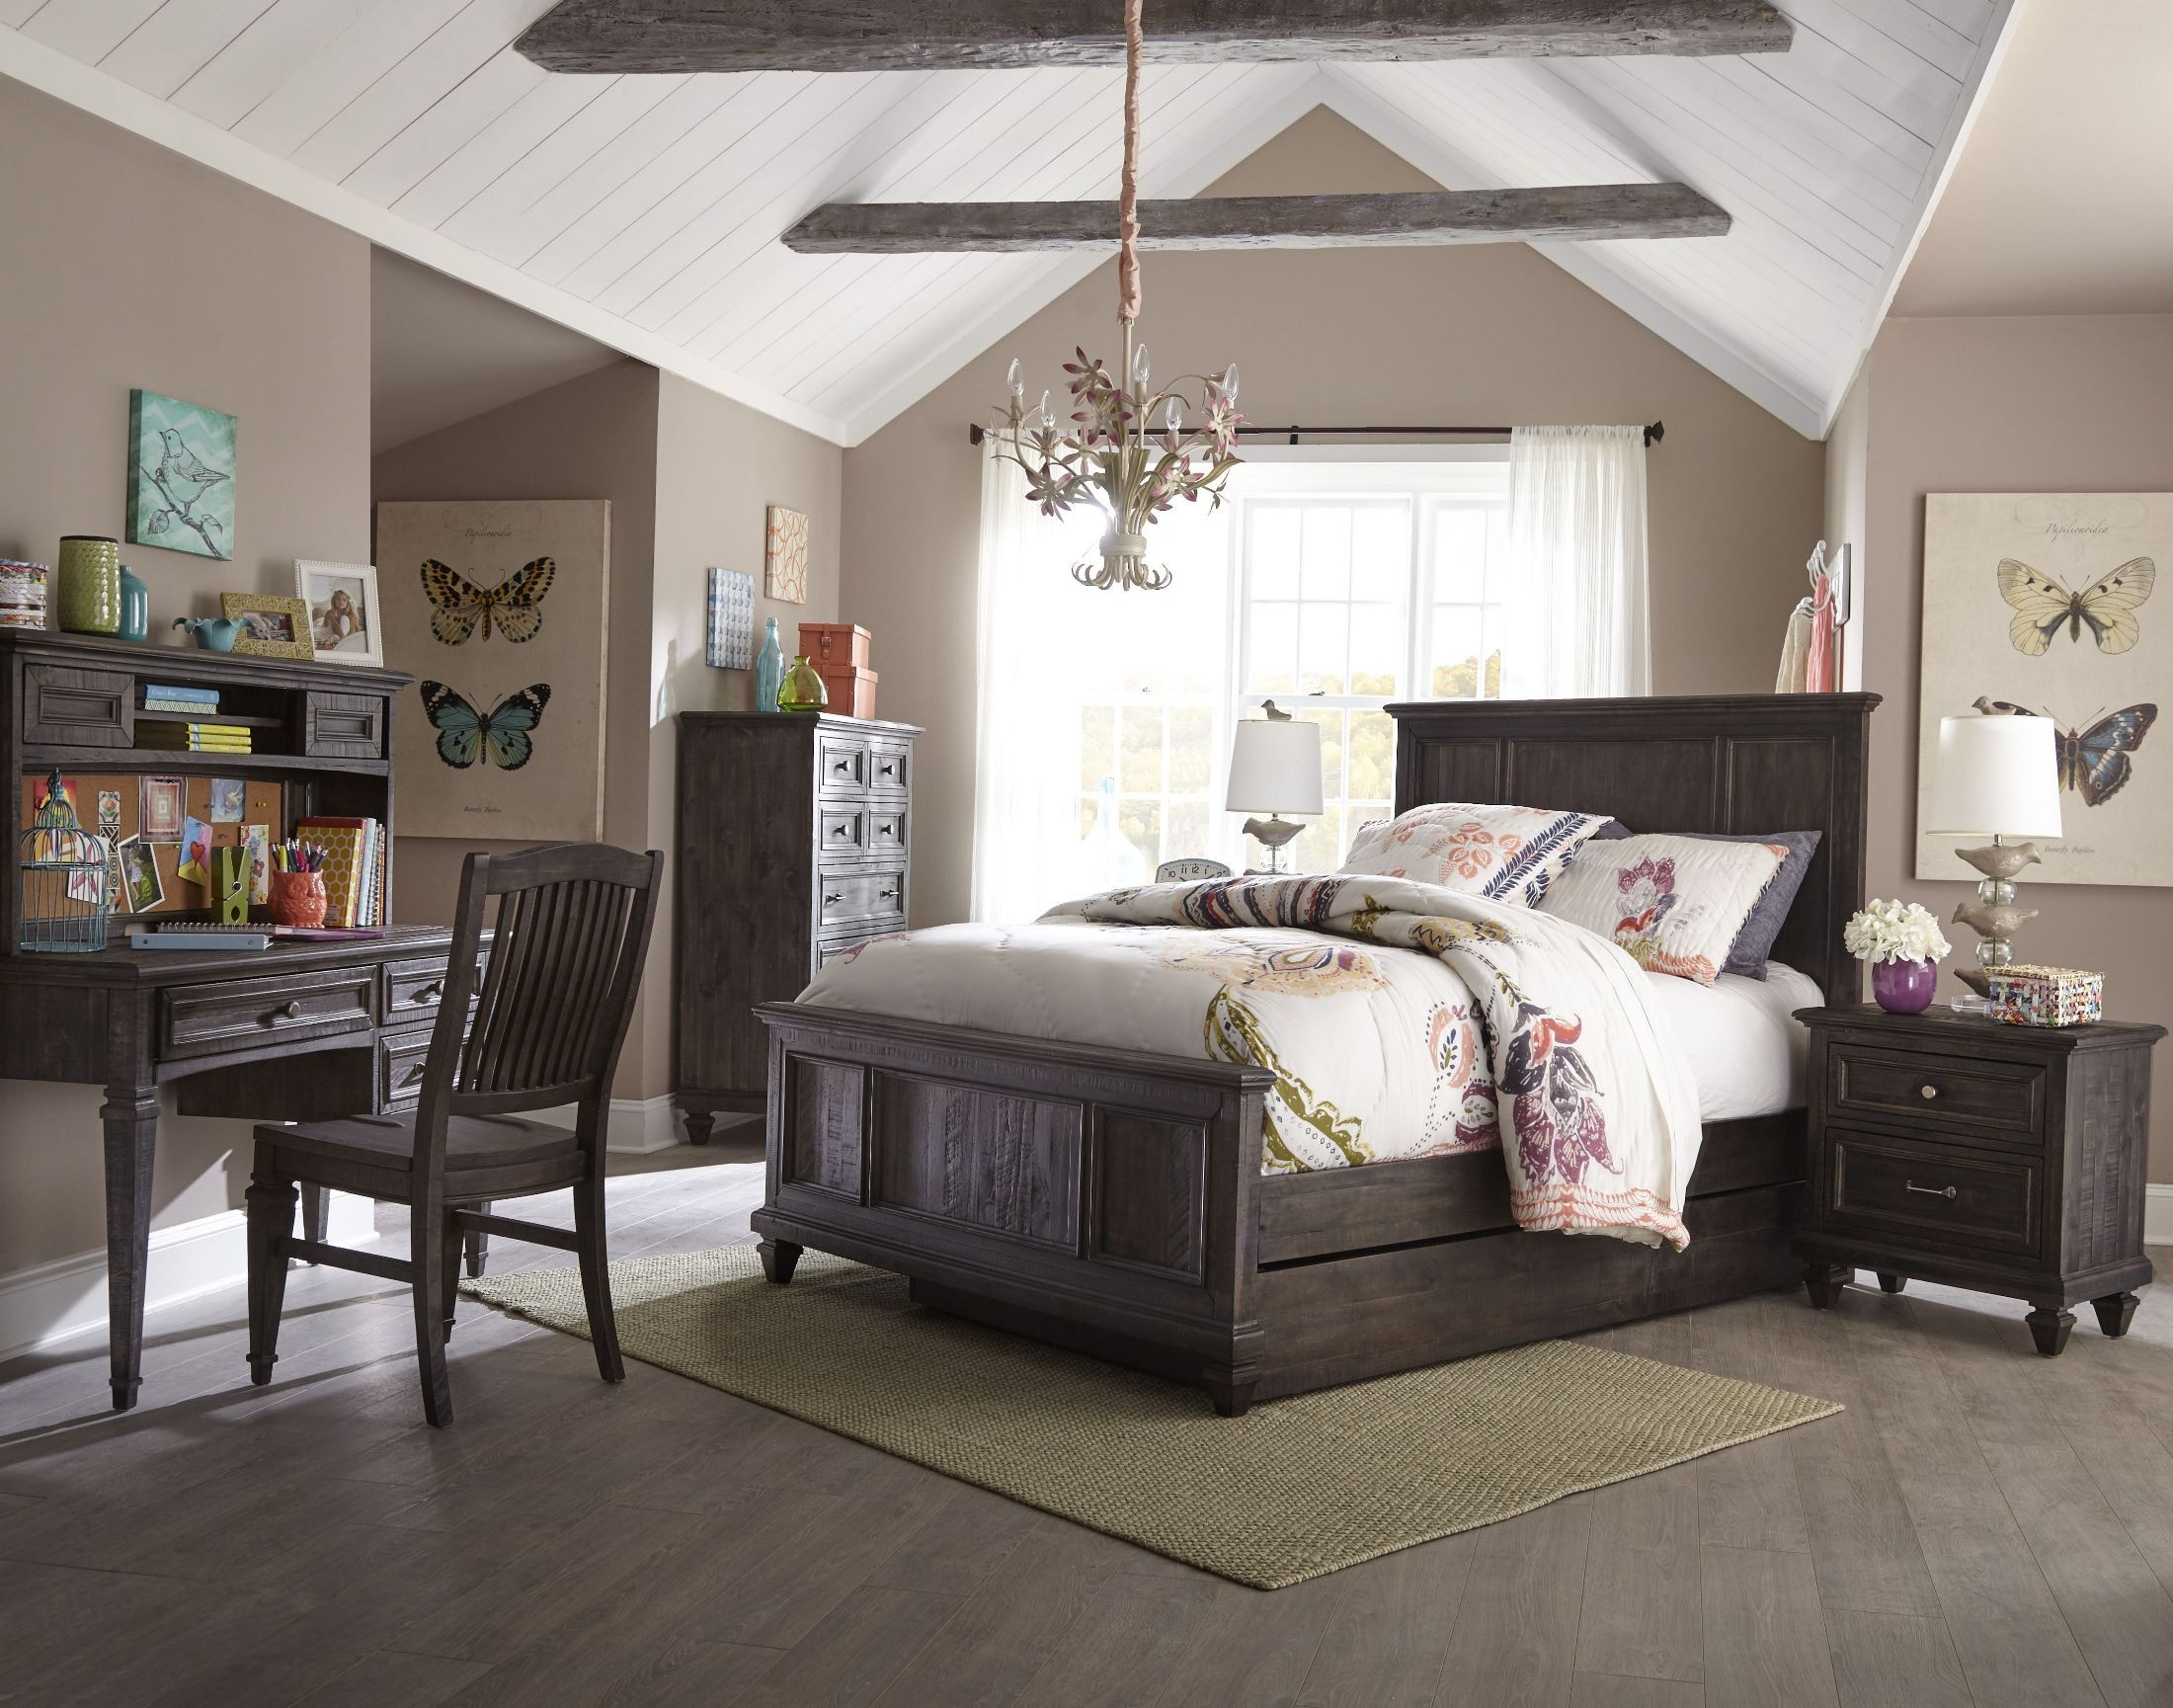 Calistoga Weathered Charcoal Youth Panel Bedroom Set from